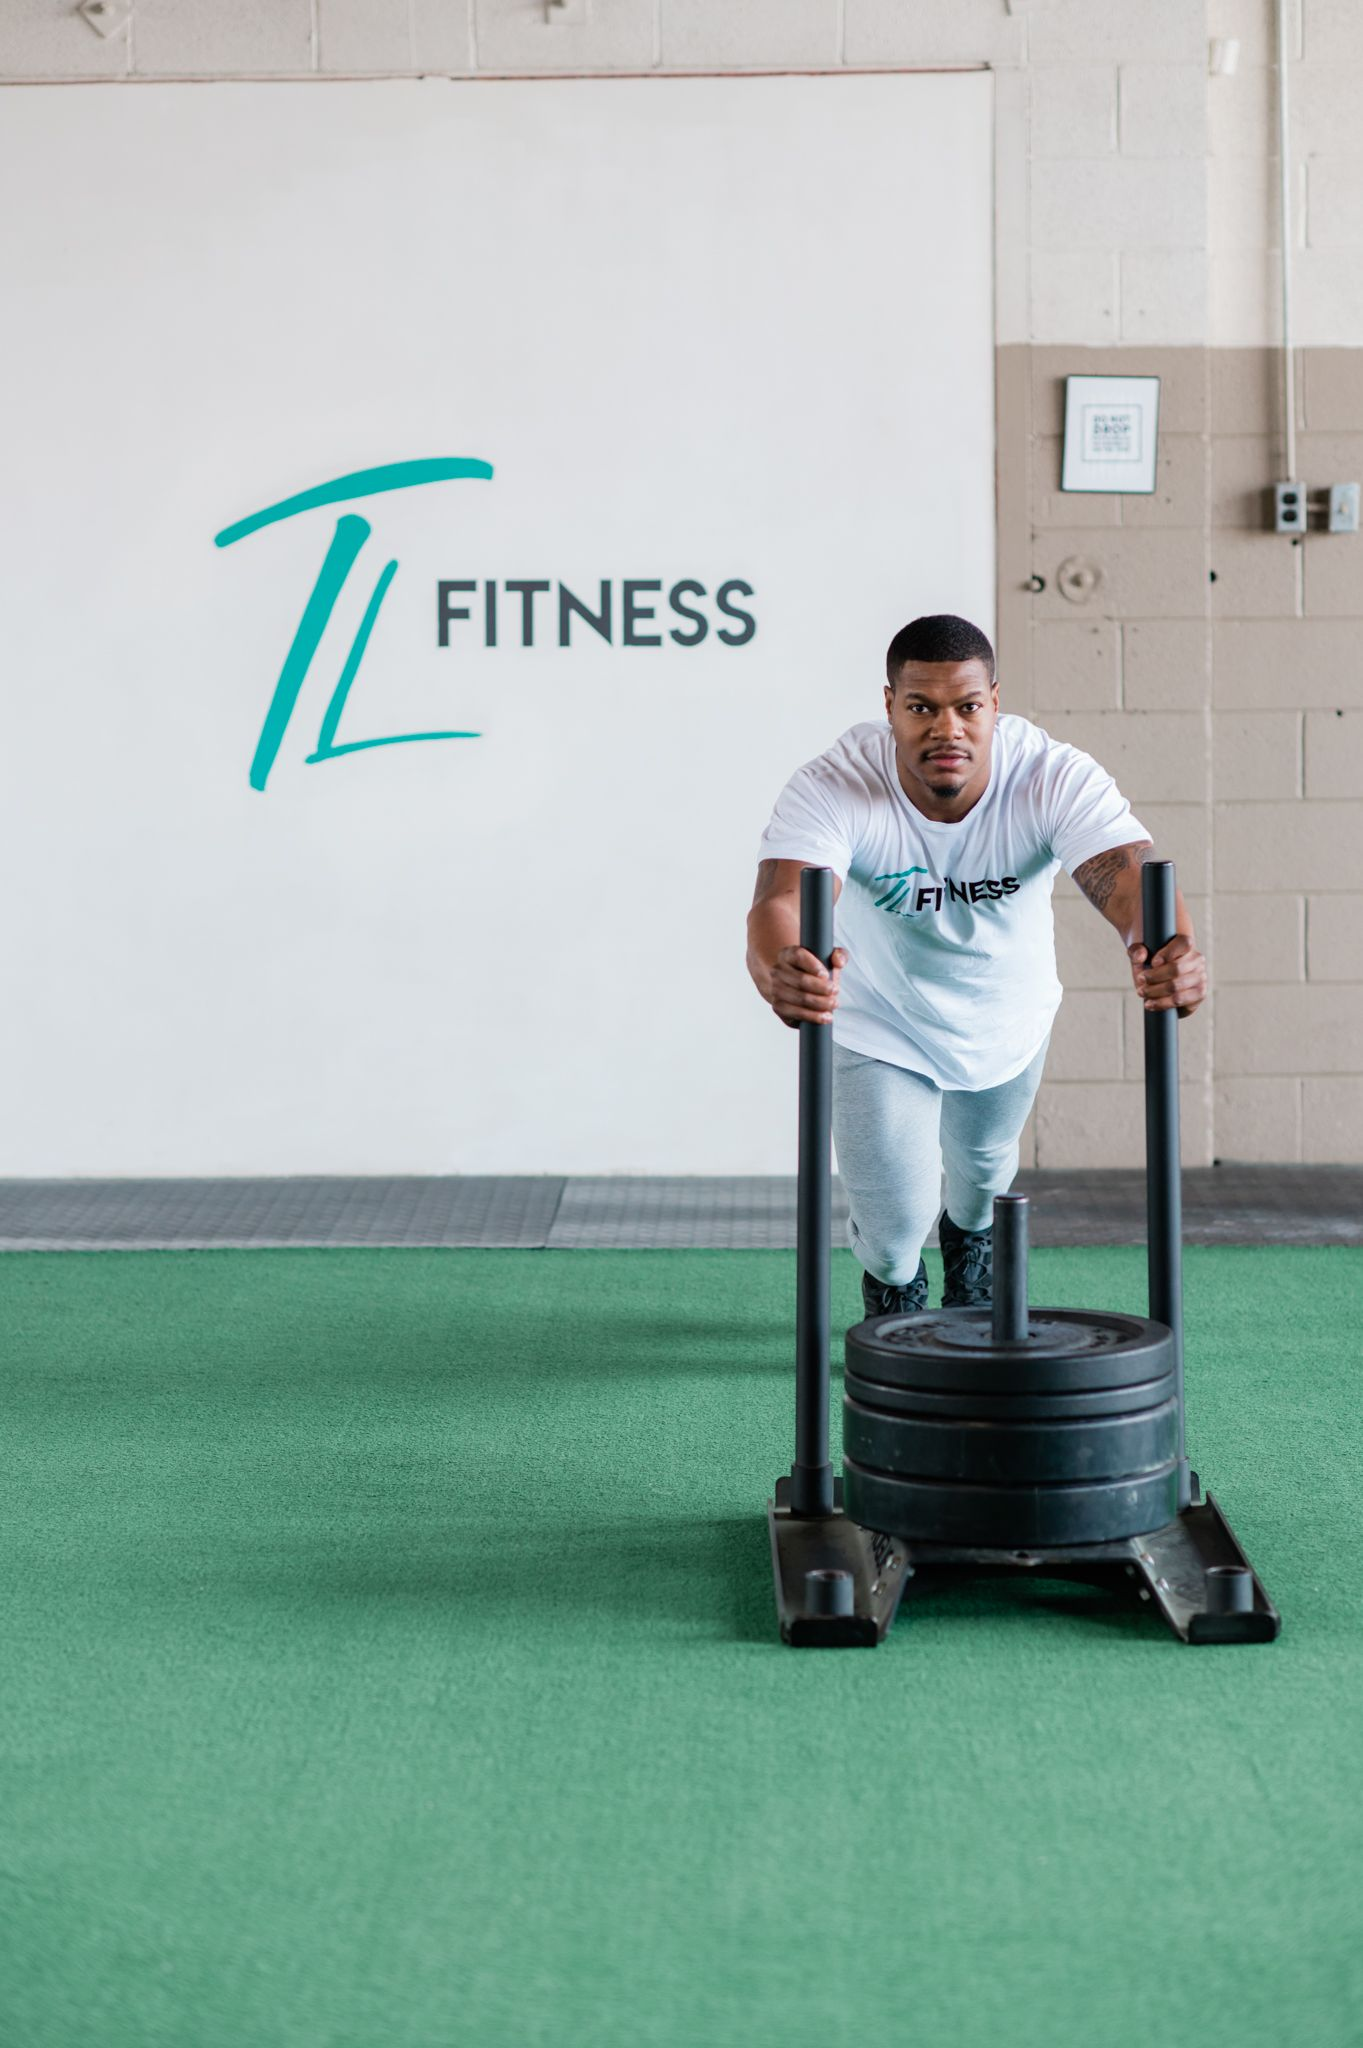 """Man looks at camera while pushing weights on a lift forward. In the background there is a wall that reads """"TL Fitness."""""""